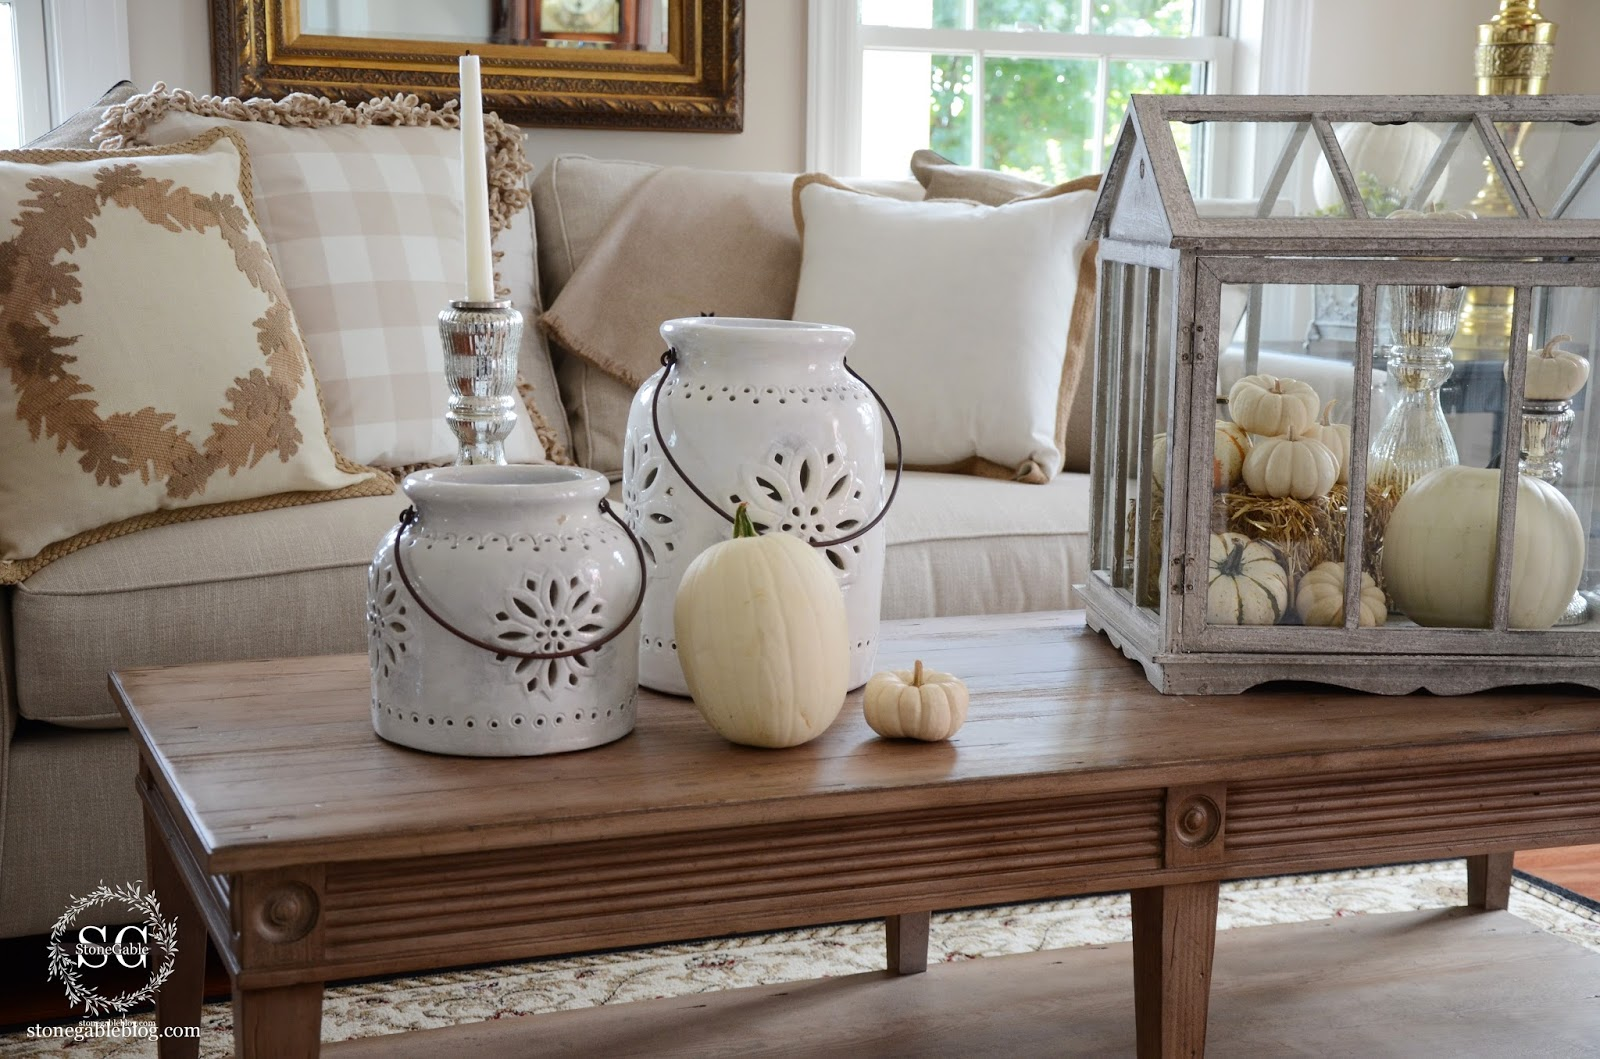 Living Room Southern Style Decorating savvy southern style white pumpkins in the living room guest post